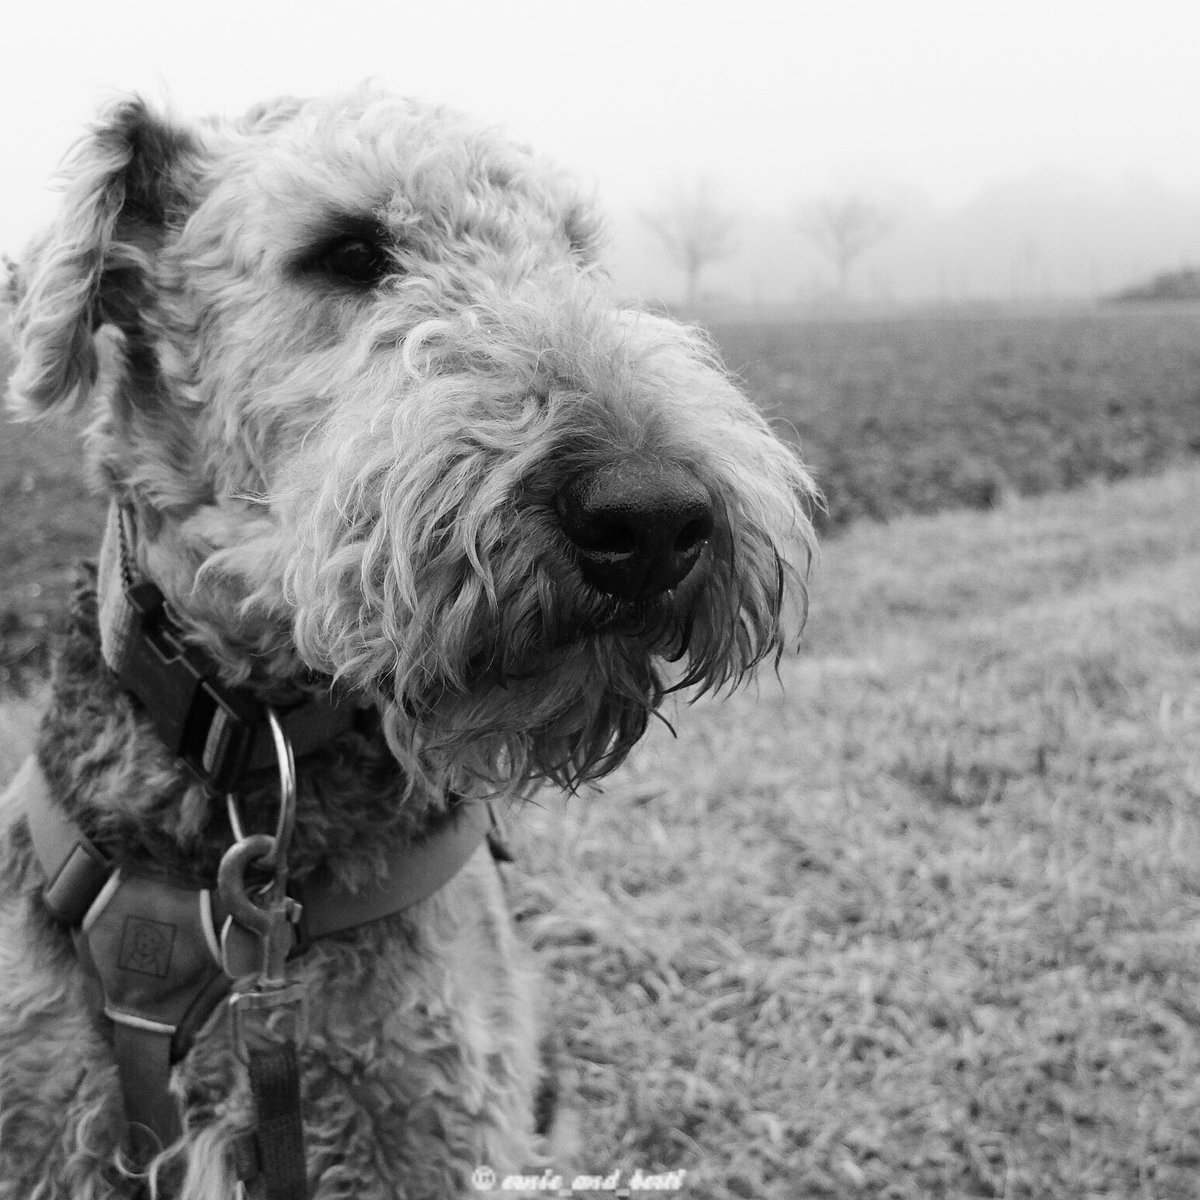 Even a grey day gets better if a #dog is around! <br>http://pic.twitter.com/A63OgHu7LV